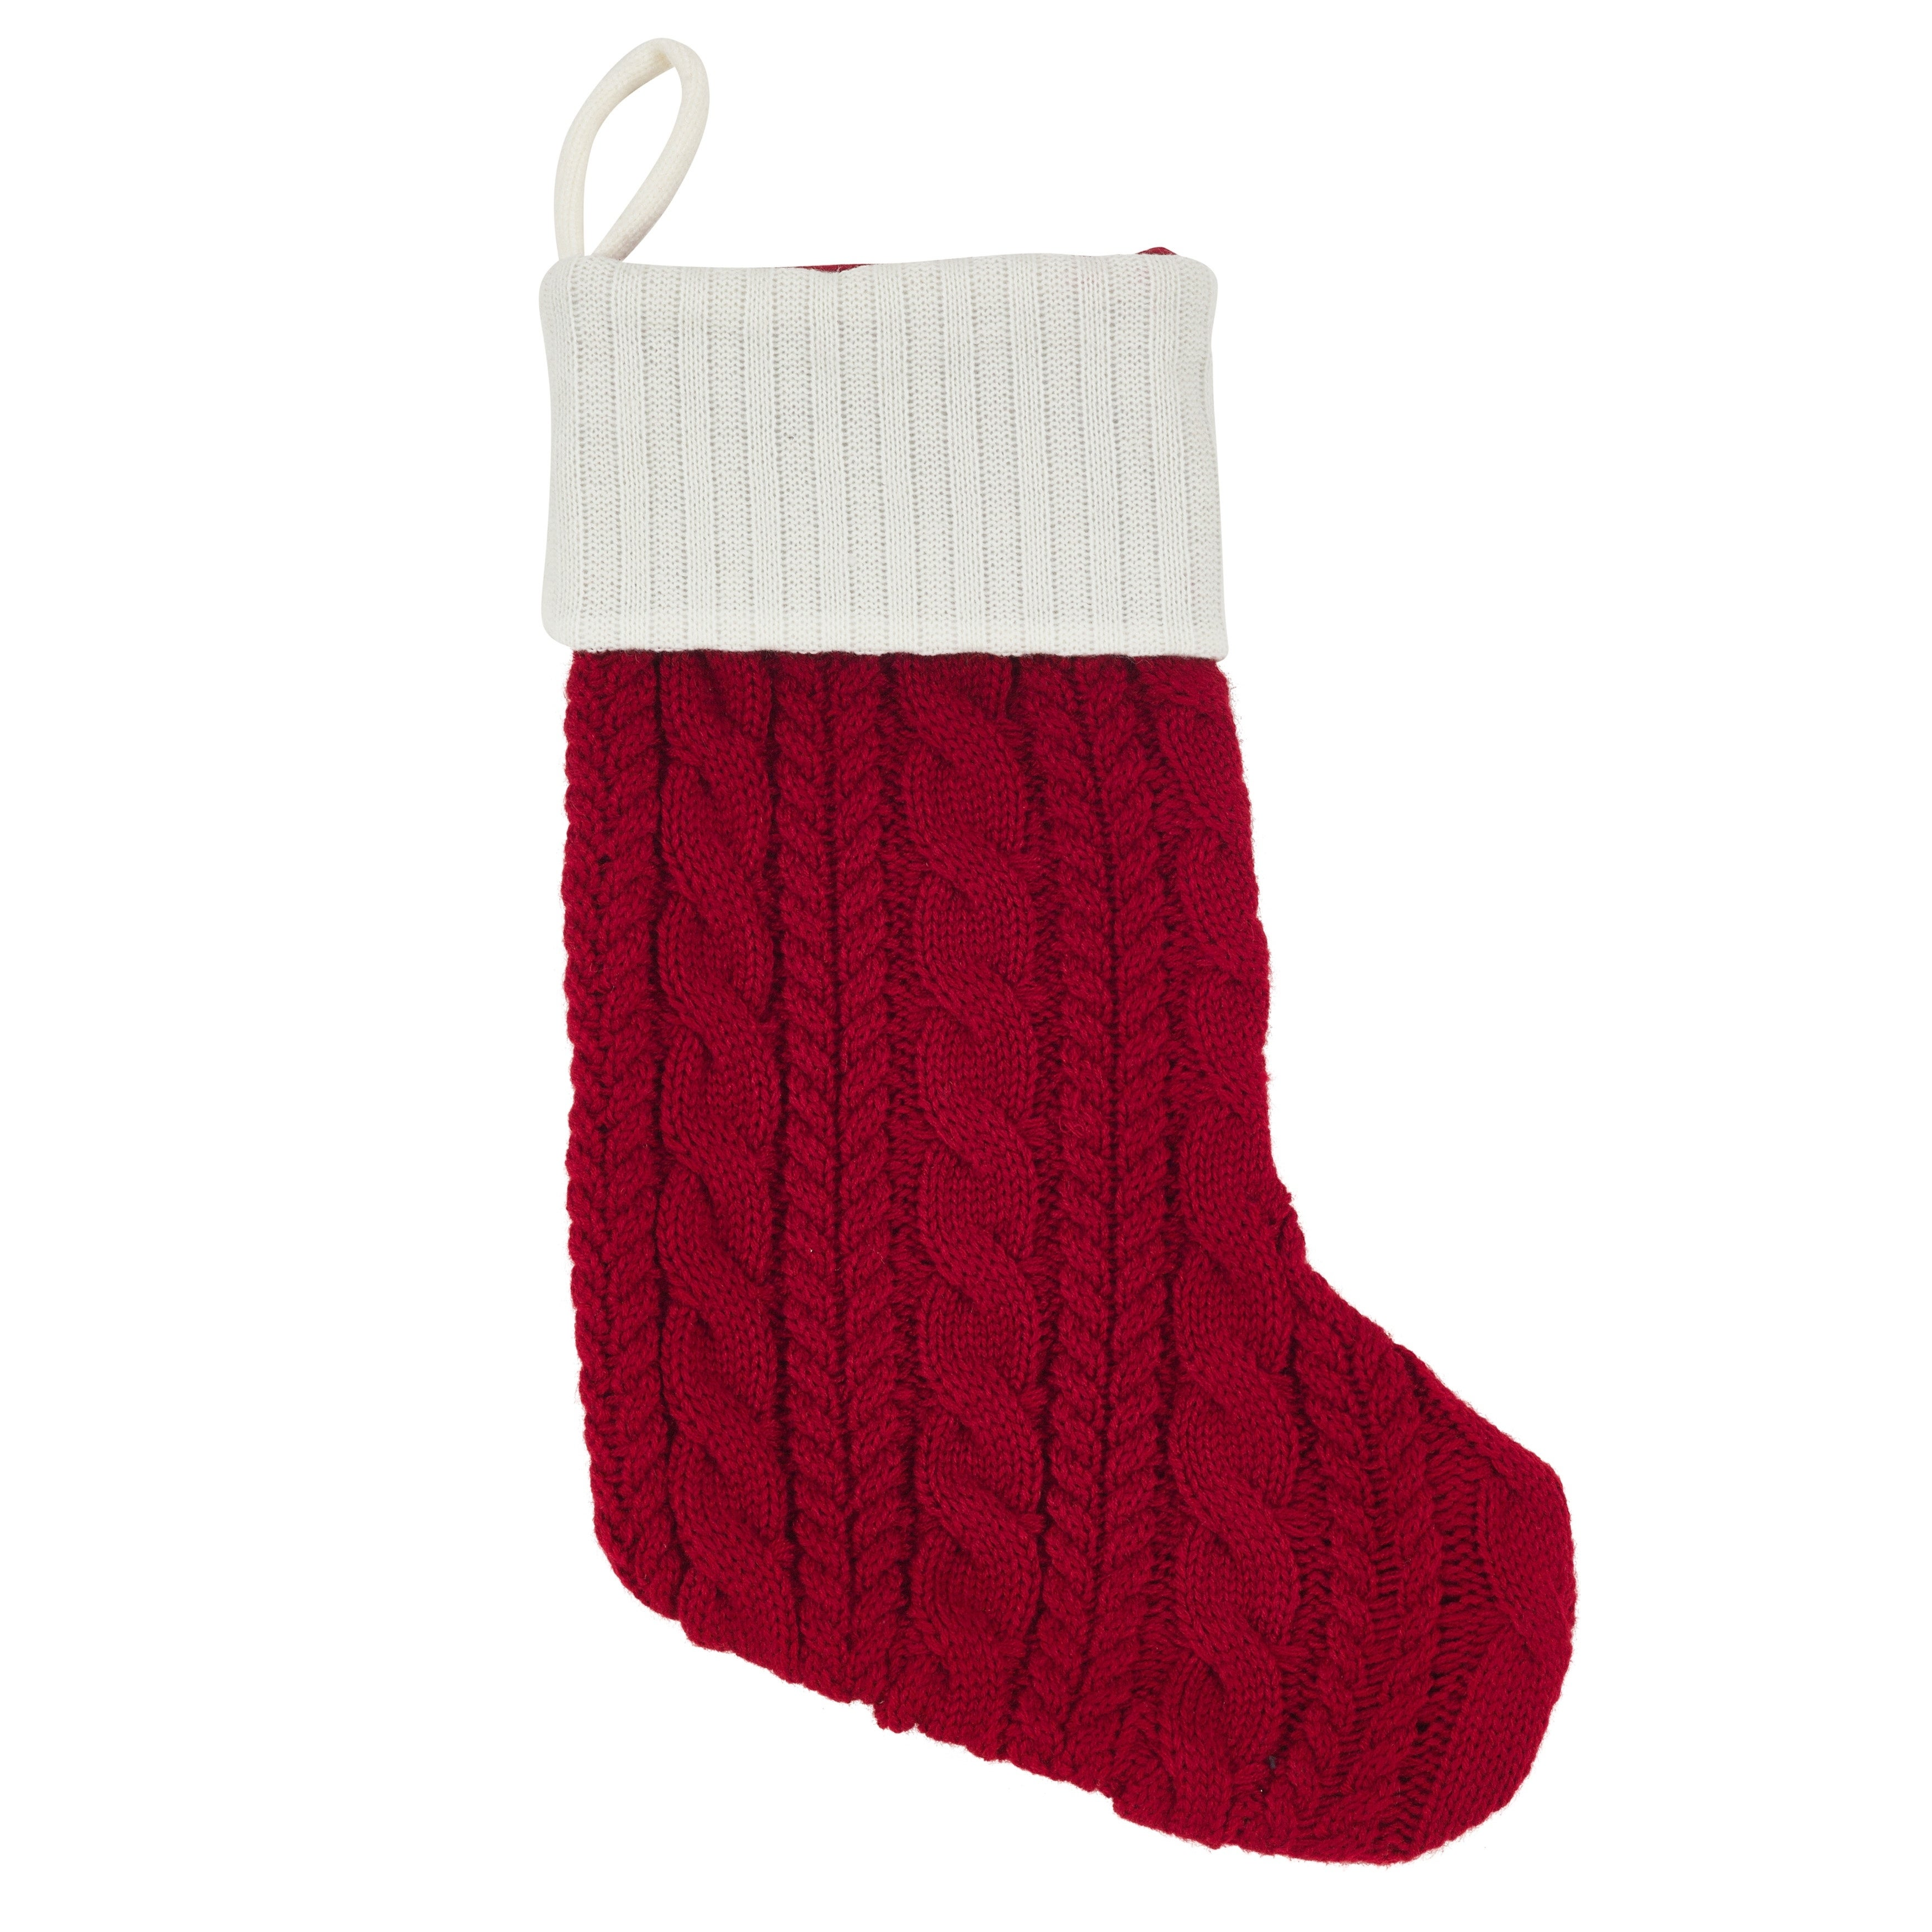 Cable Knit Christmas Stockings.Chunky Cable Knit Christmas Stocking